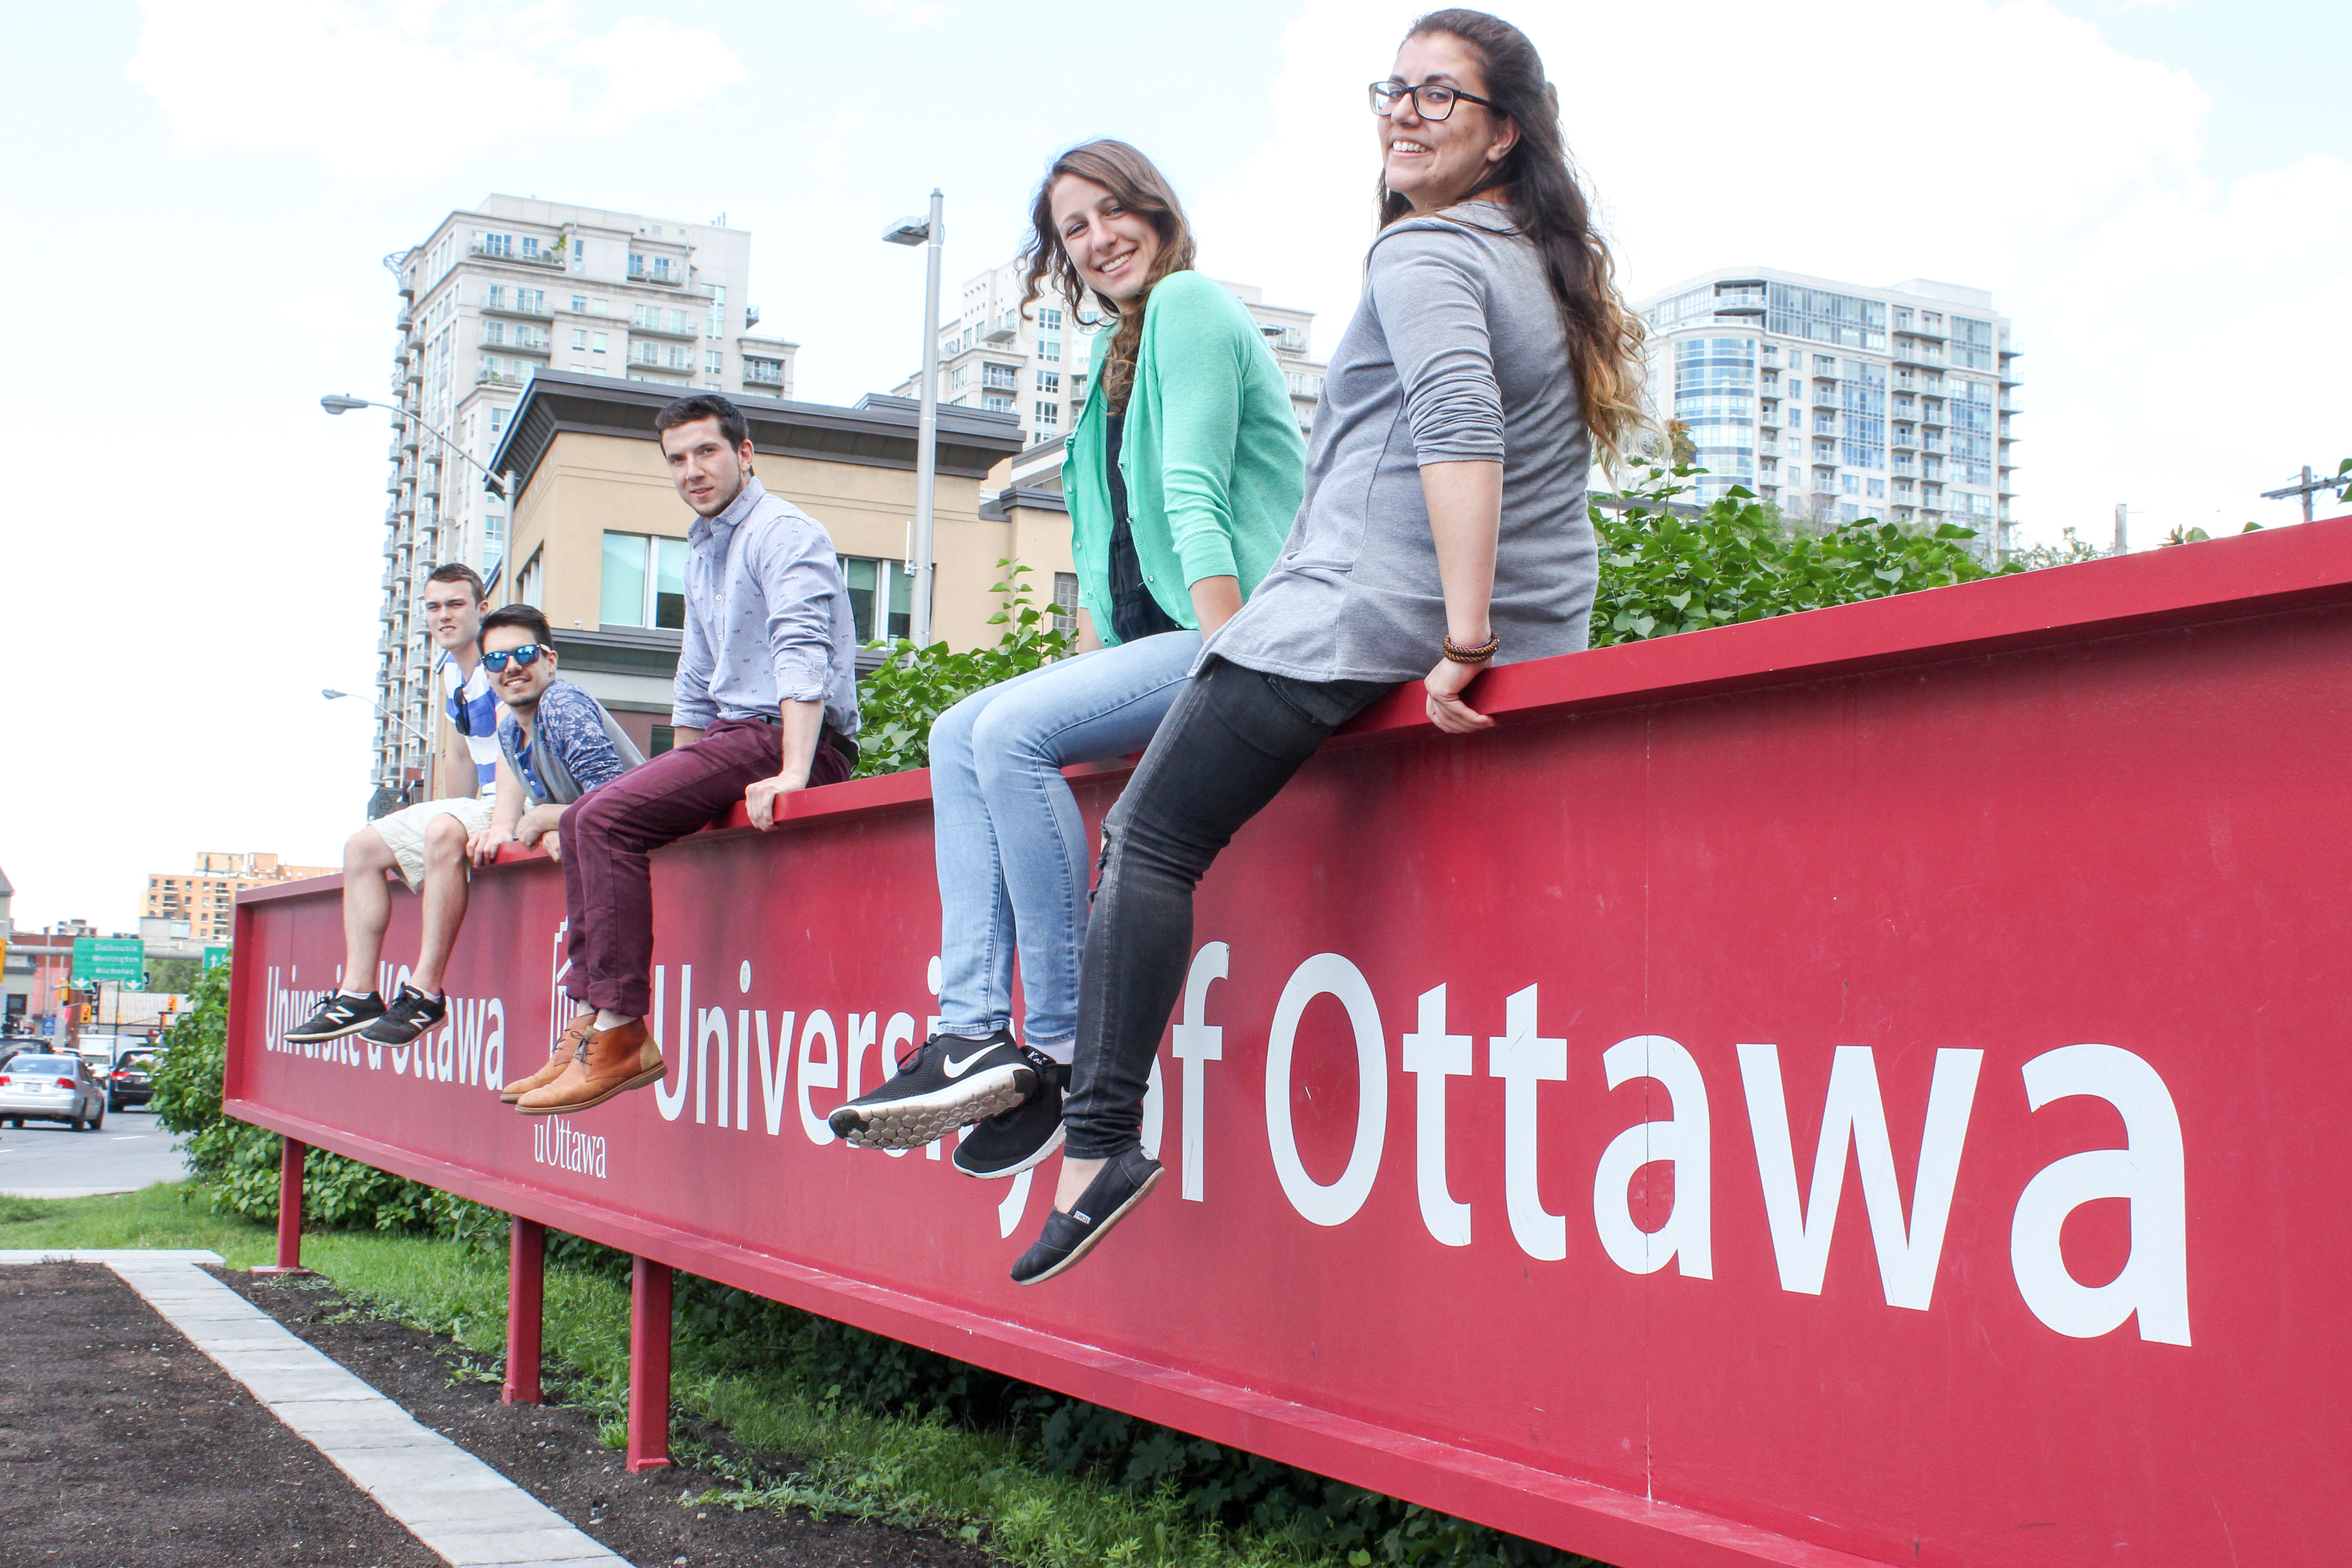 Students sitting on UOttawa sign